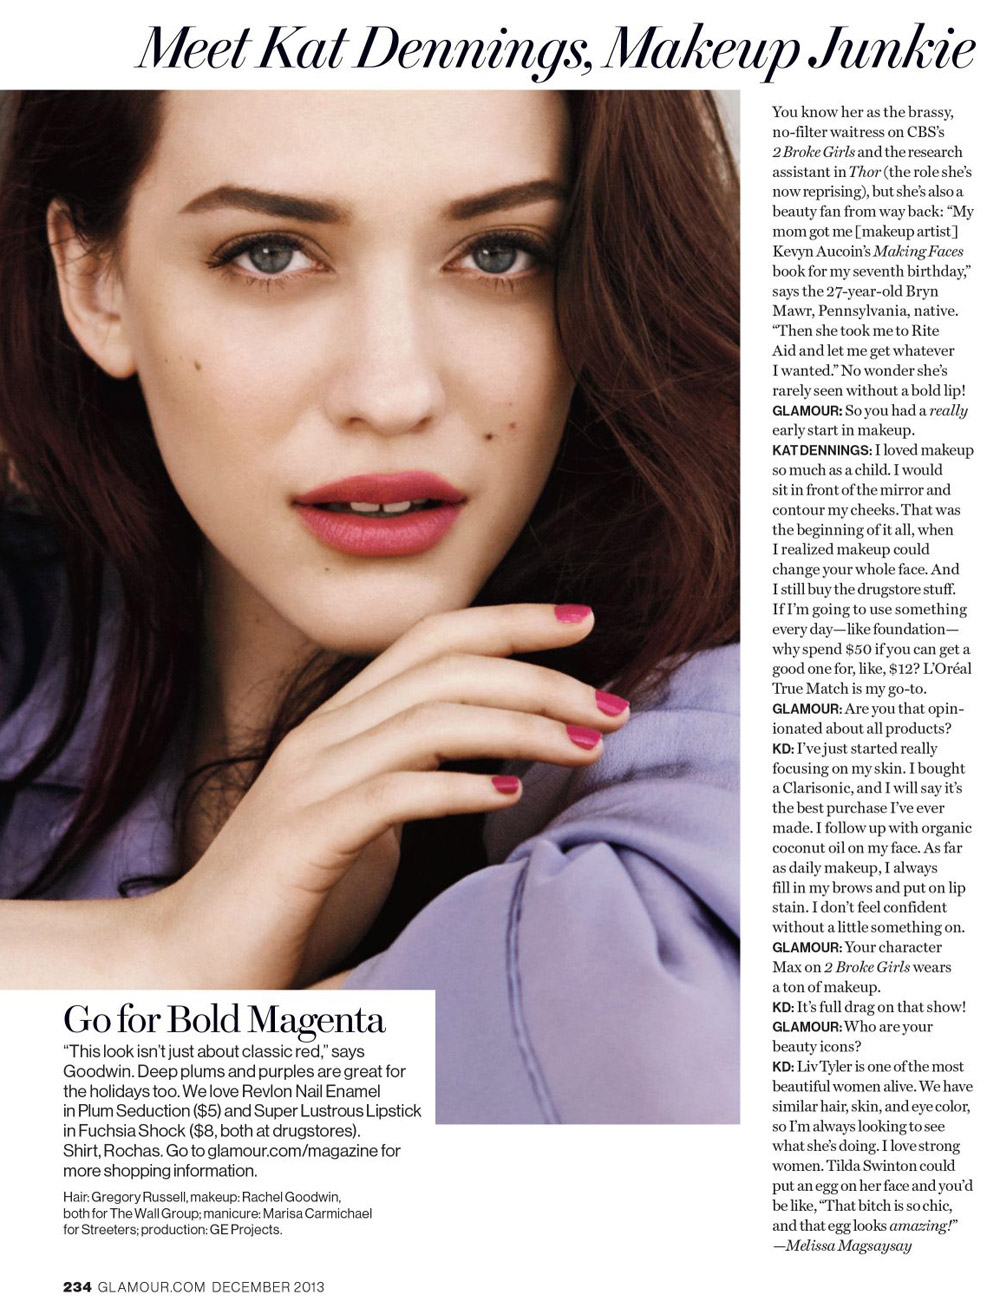 Kat-Dennings-Glamour-Magazine-Dec2013-5.jpg